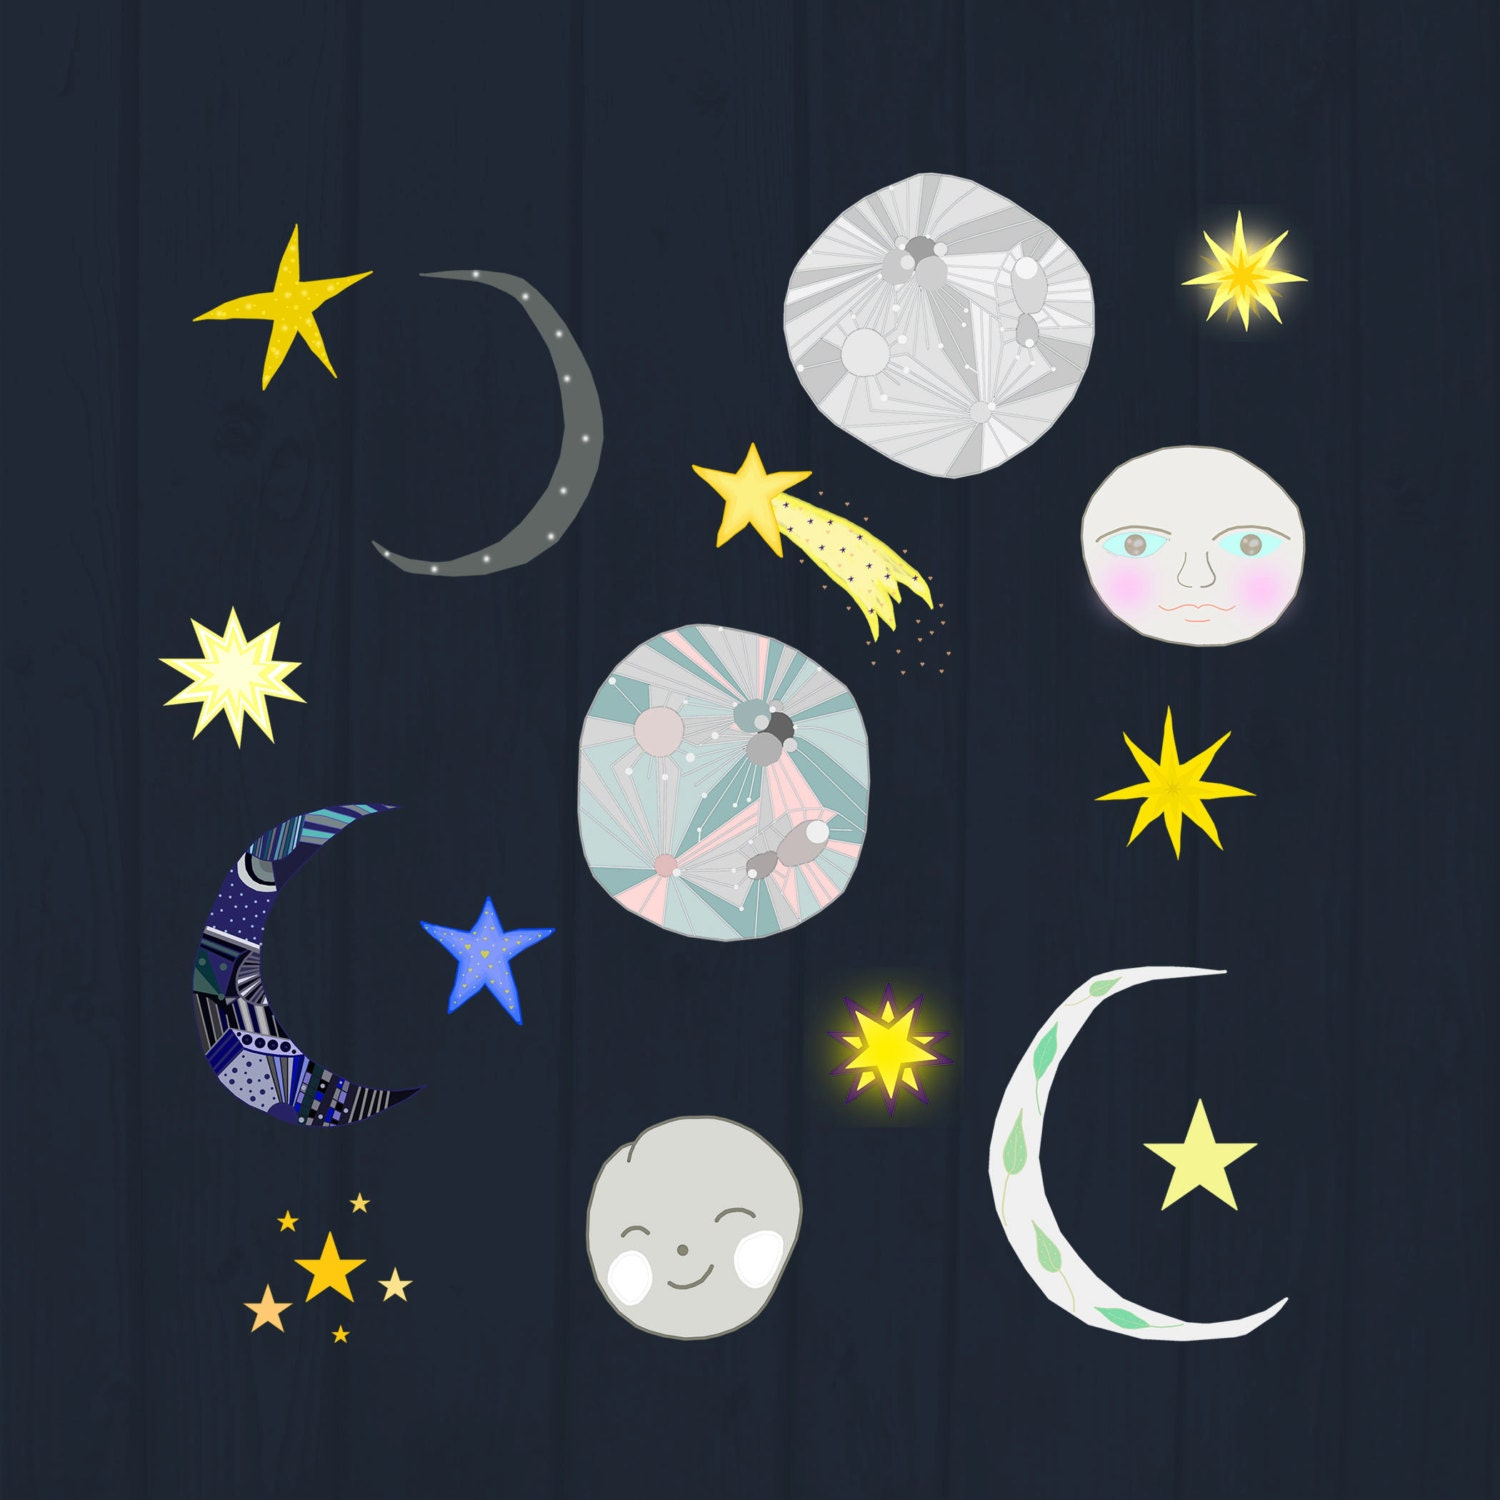 To the Moon Cliparts, Cute Moon and Stars Digital Images ...